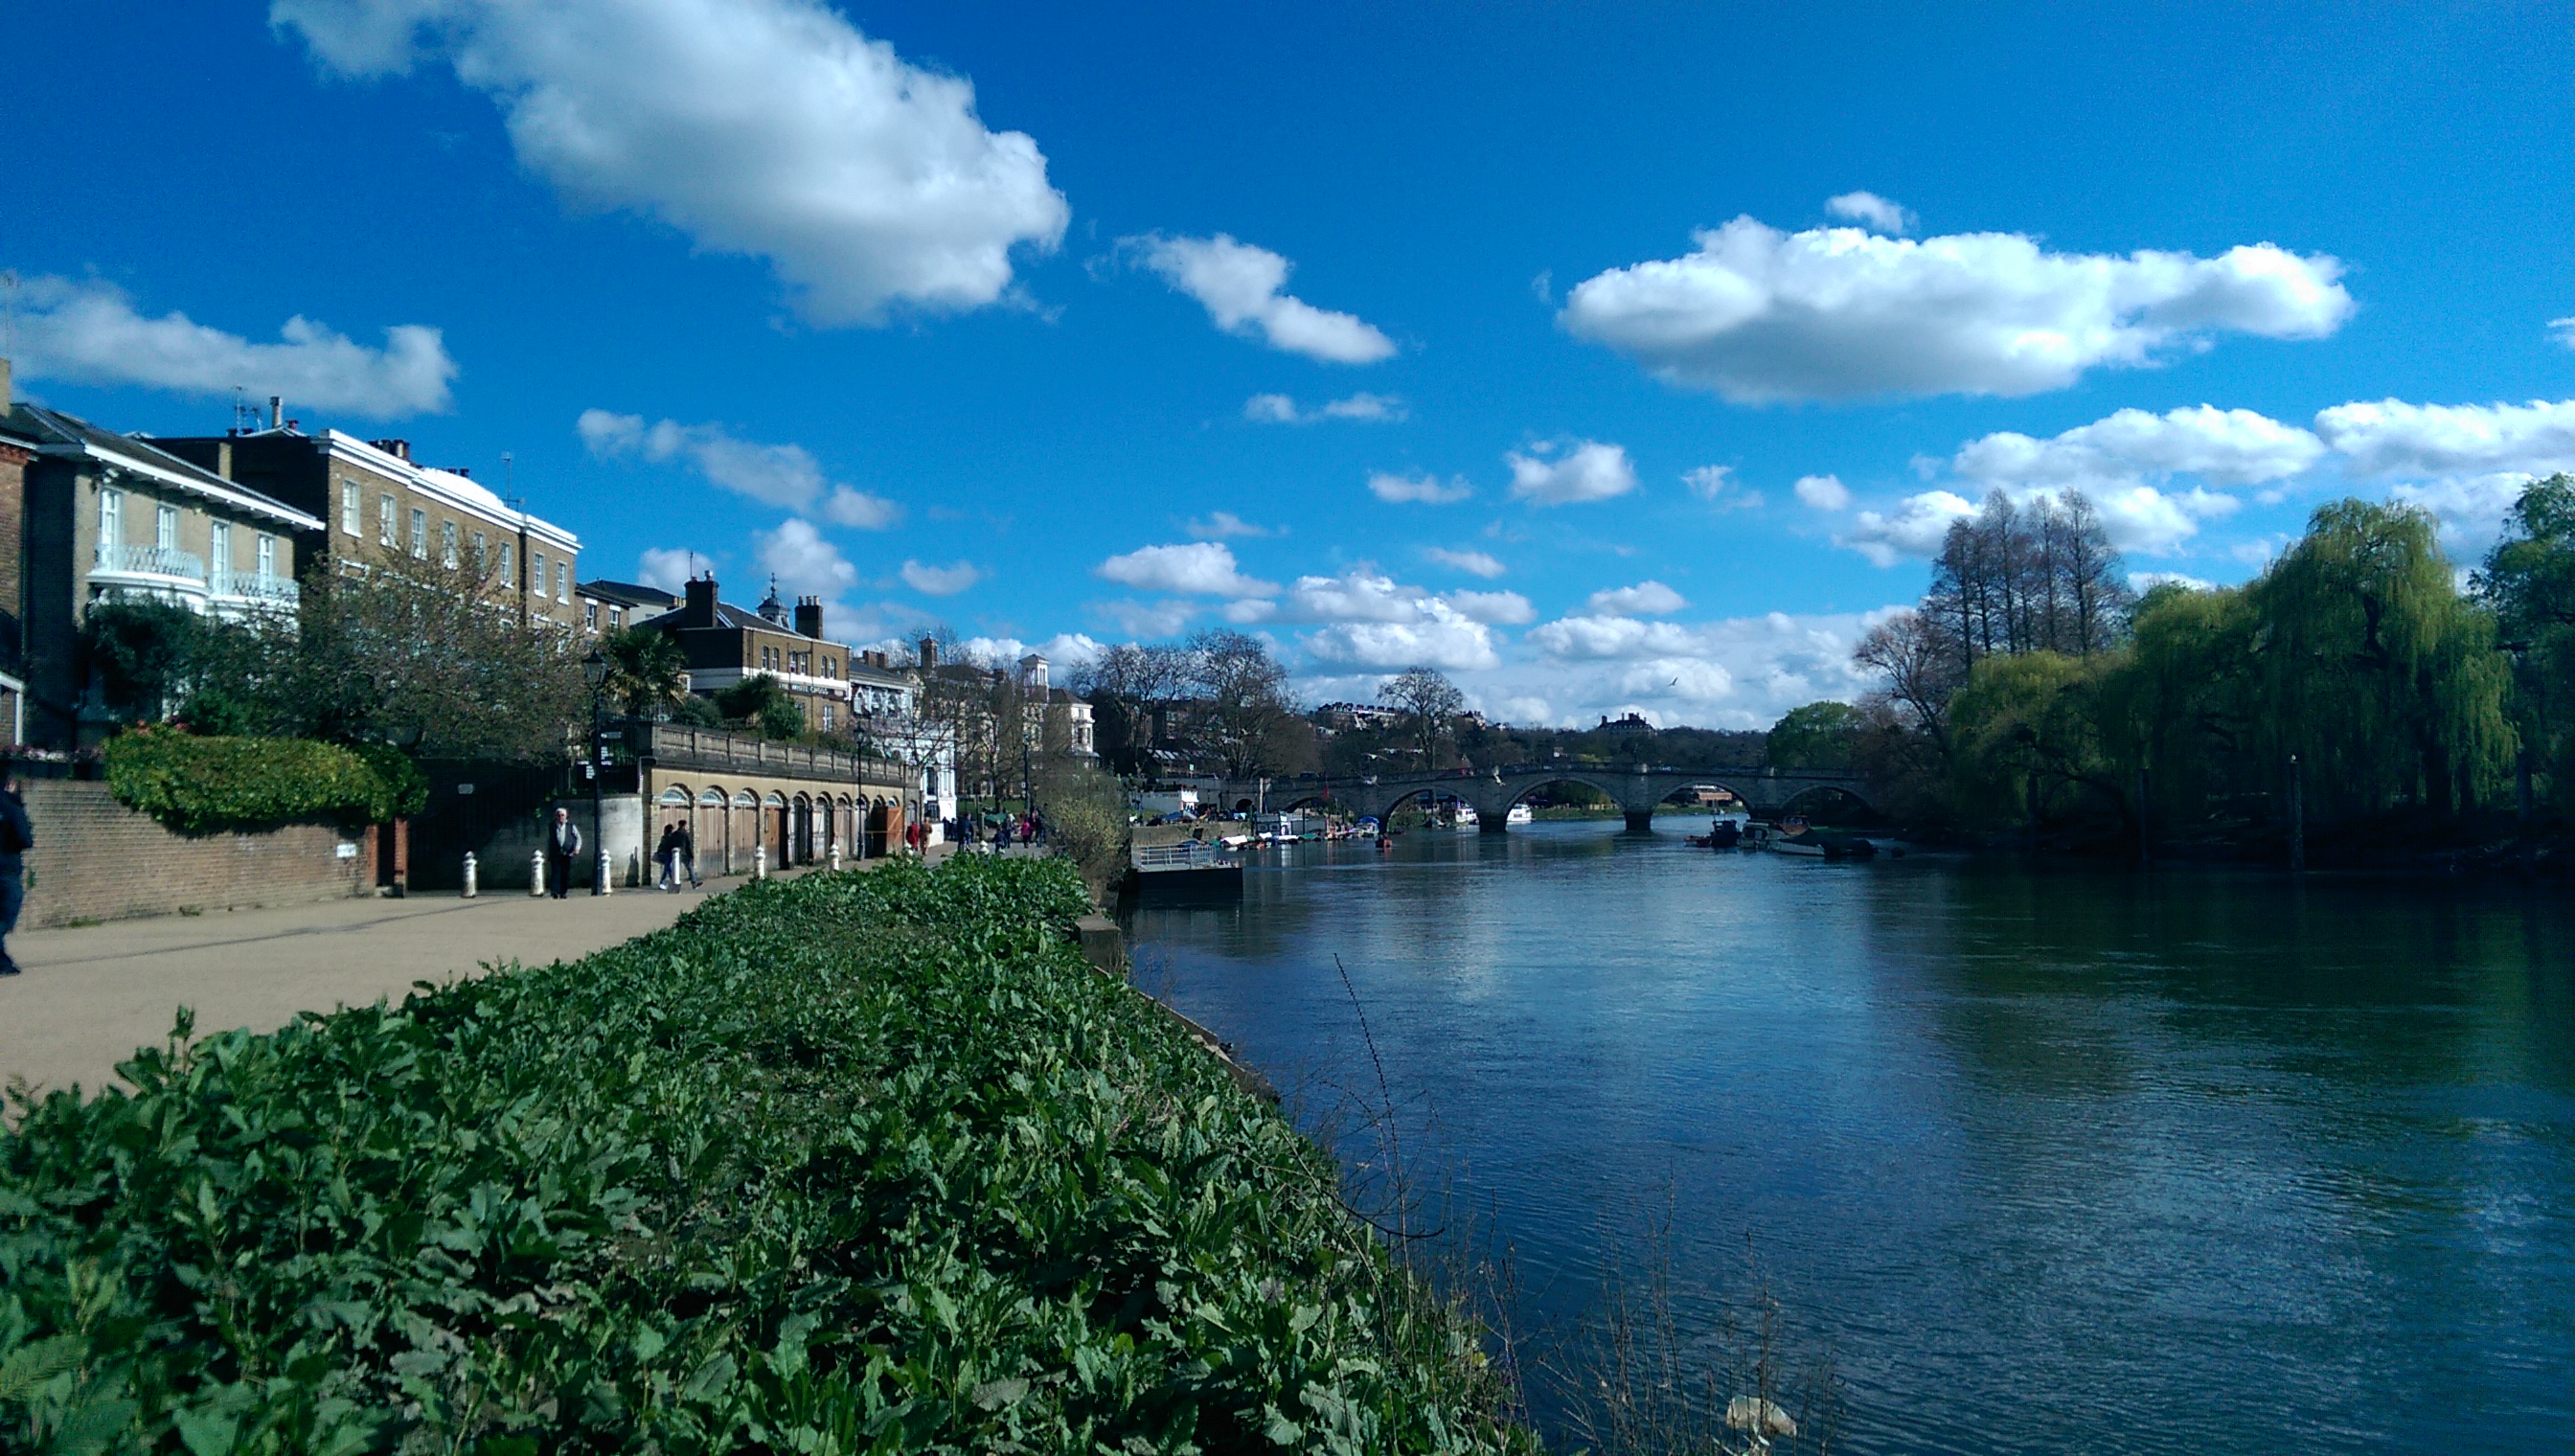 richmondbridge-normal-htc-one-m8.jpg